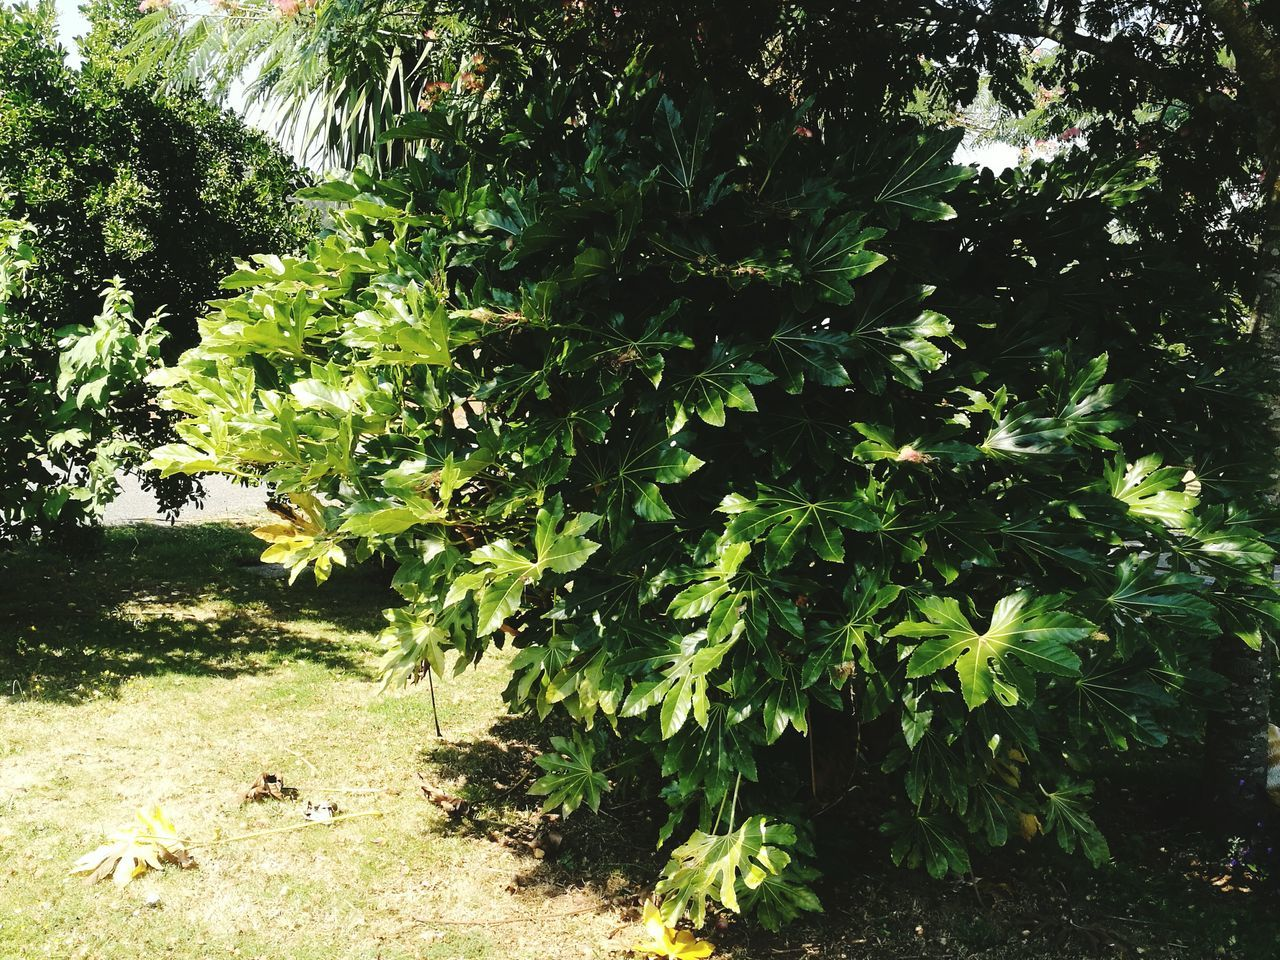 growth, green, nature, plant, vegetation, foliage, day, tree, outdoors, no people